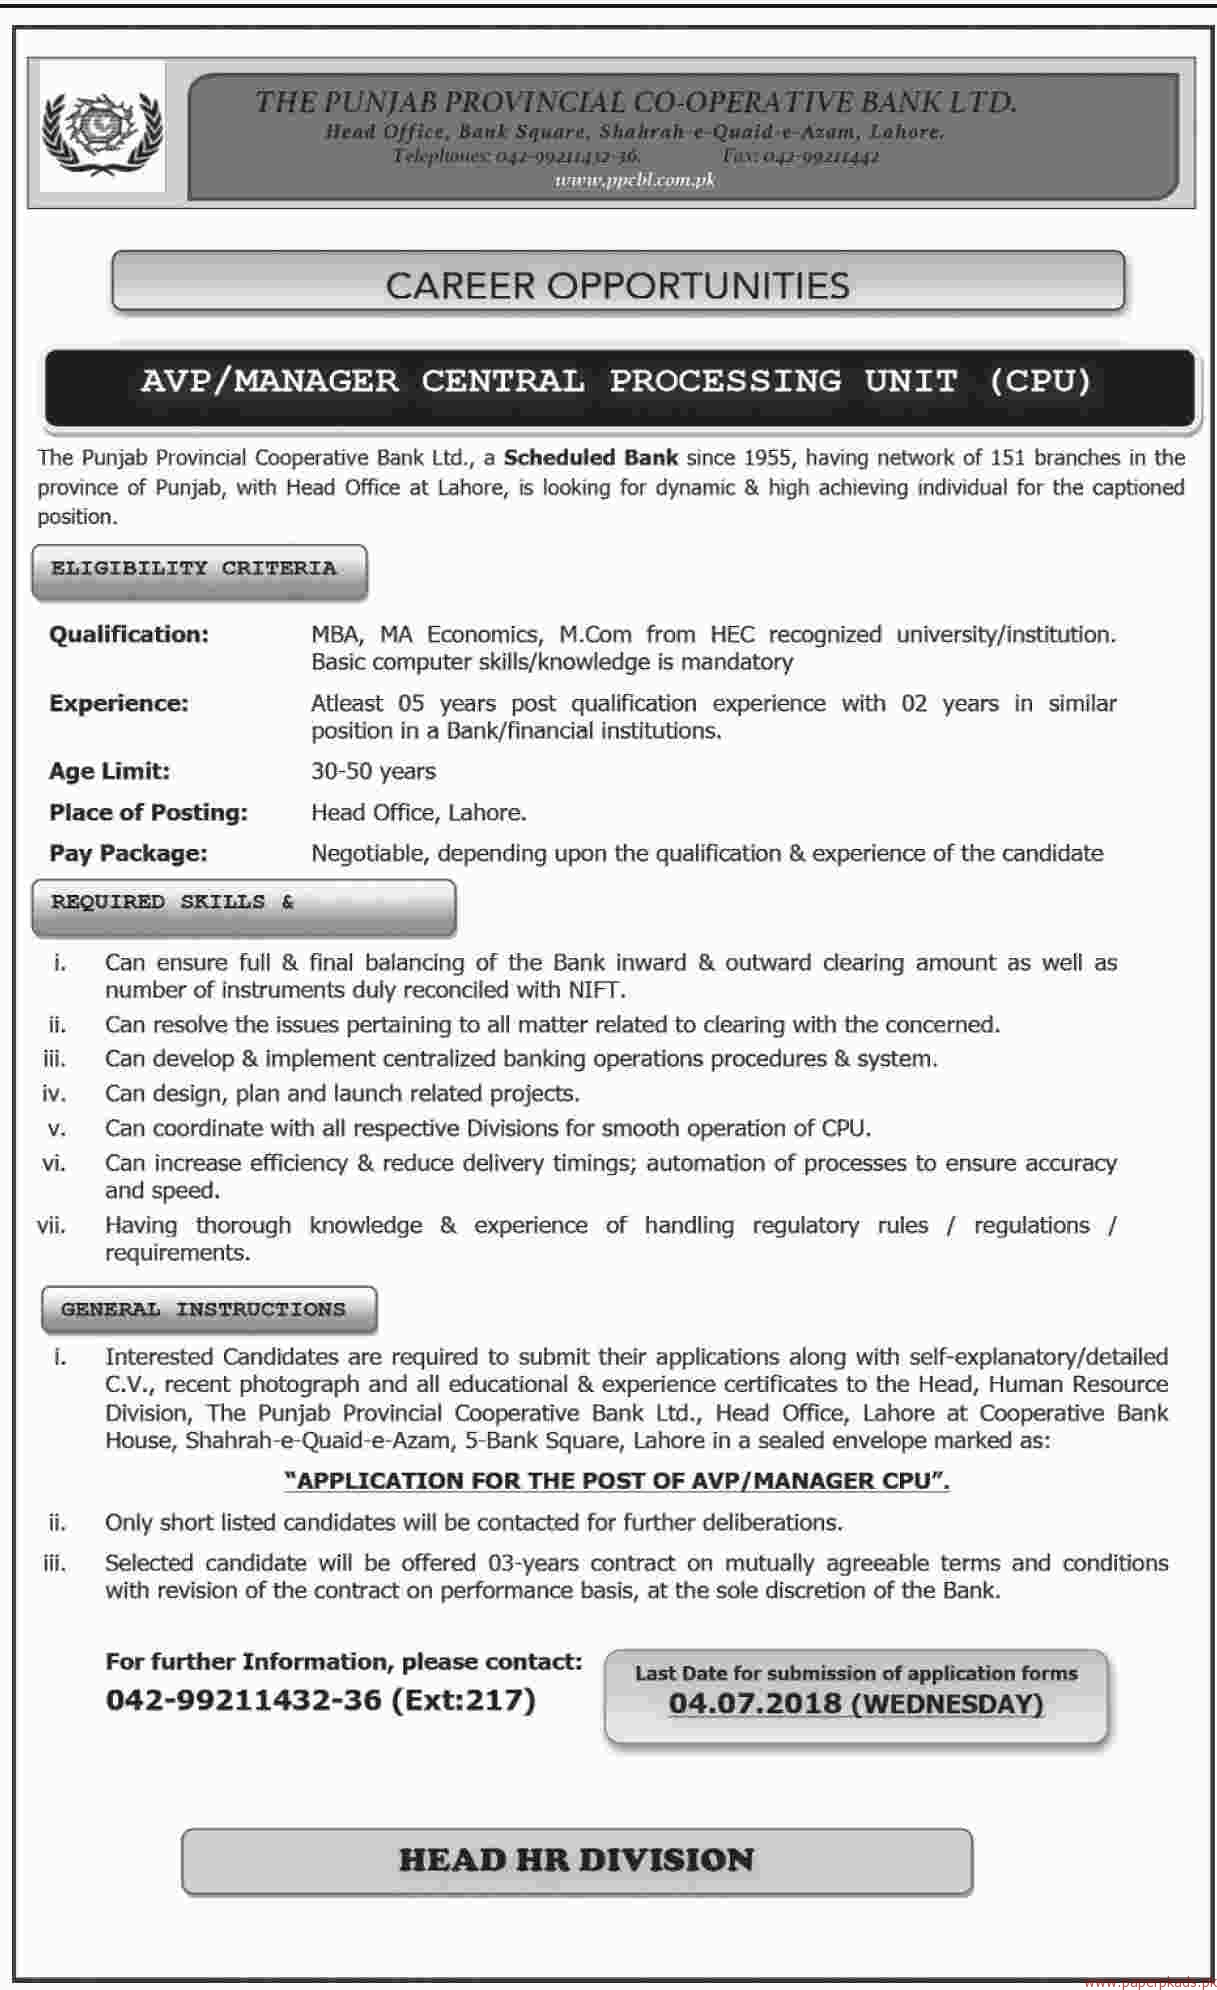 The Punjab Provincial Co-operative Bank Limited Jobs 2018